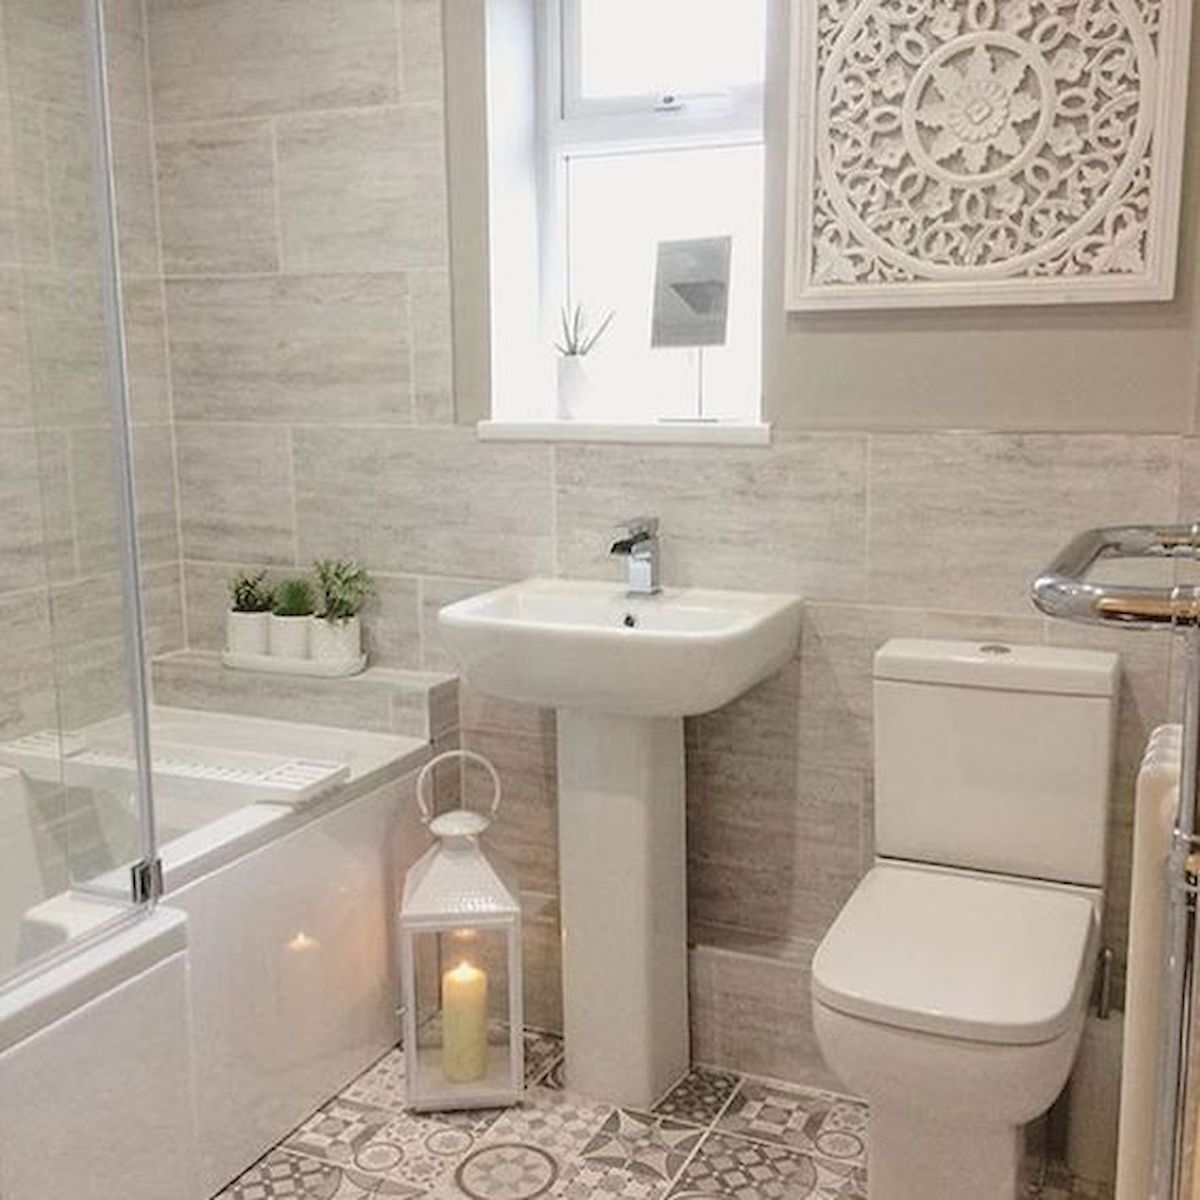 50 Cozy Bathroom Design Ideas for Small Space in Your Home ... on Bathroom Ideas For Small Space  id=86274